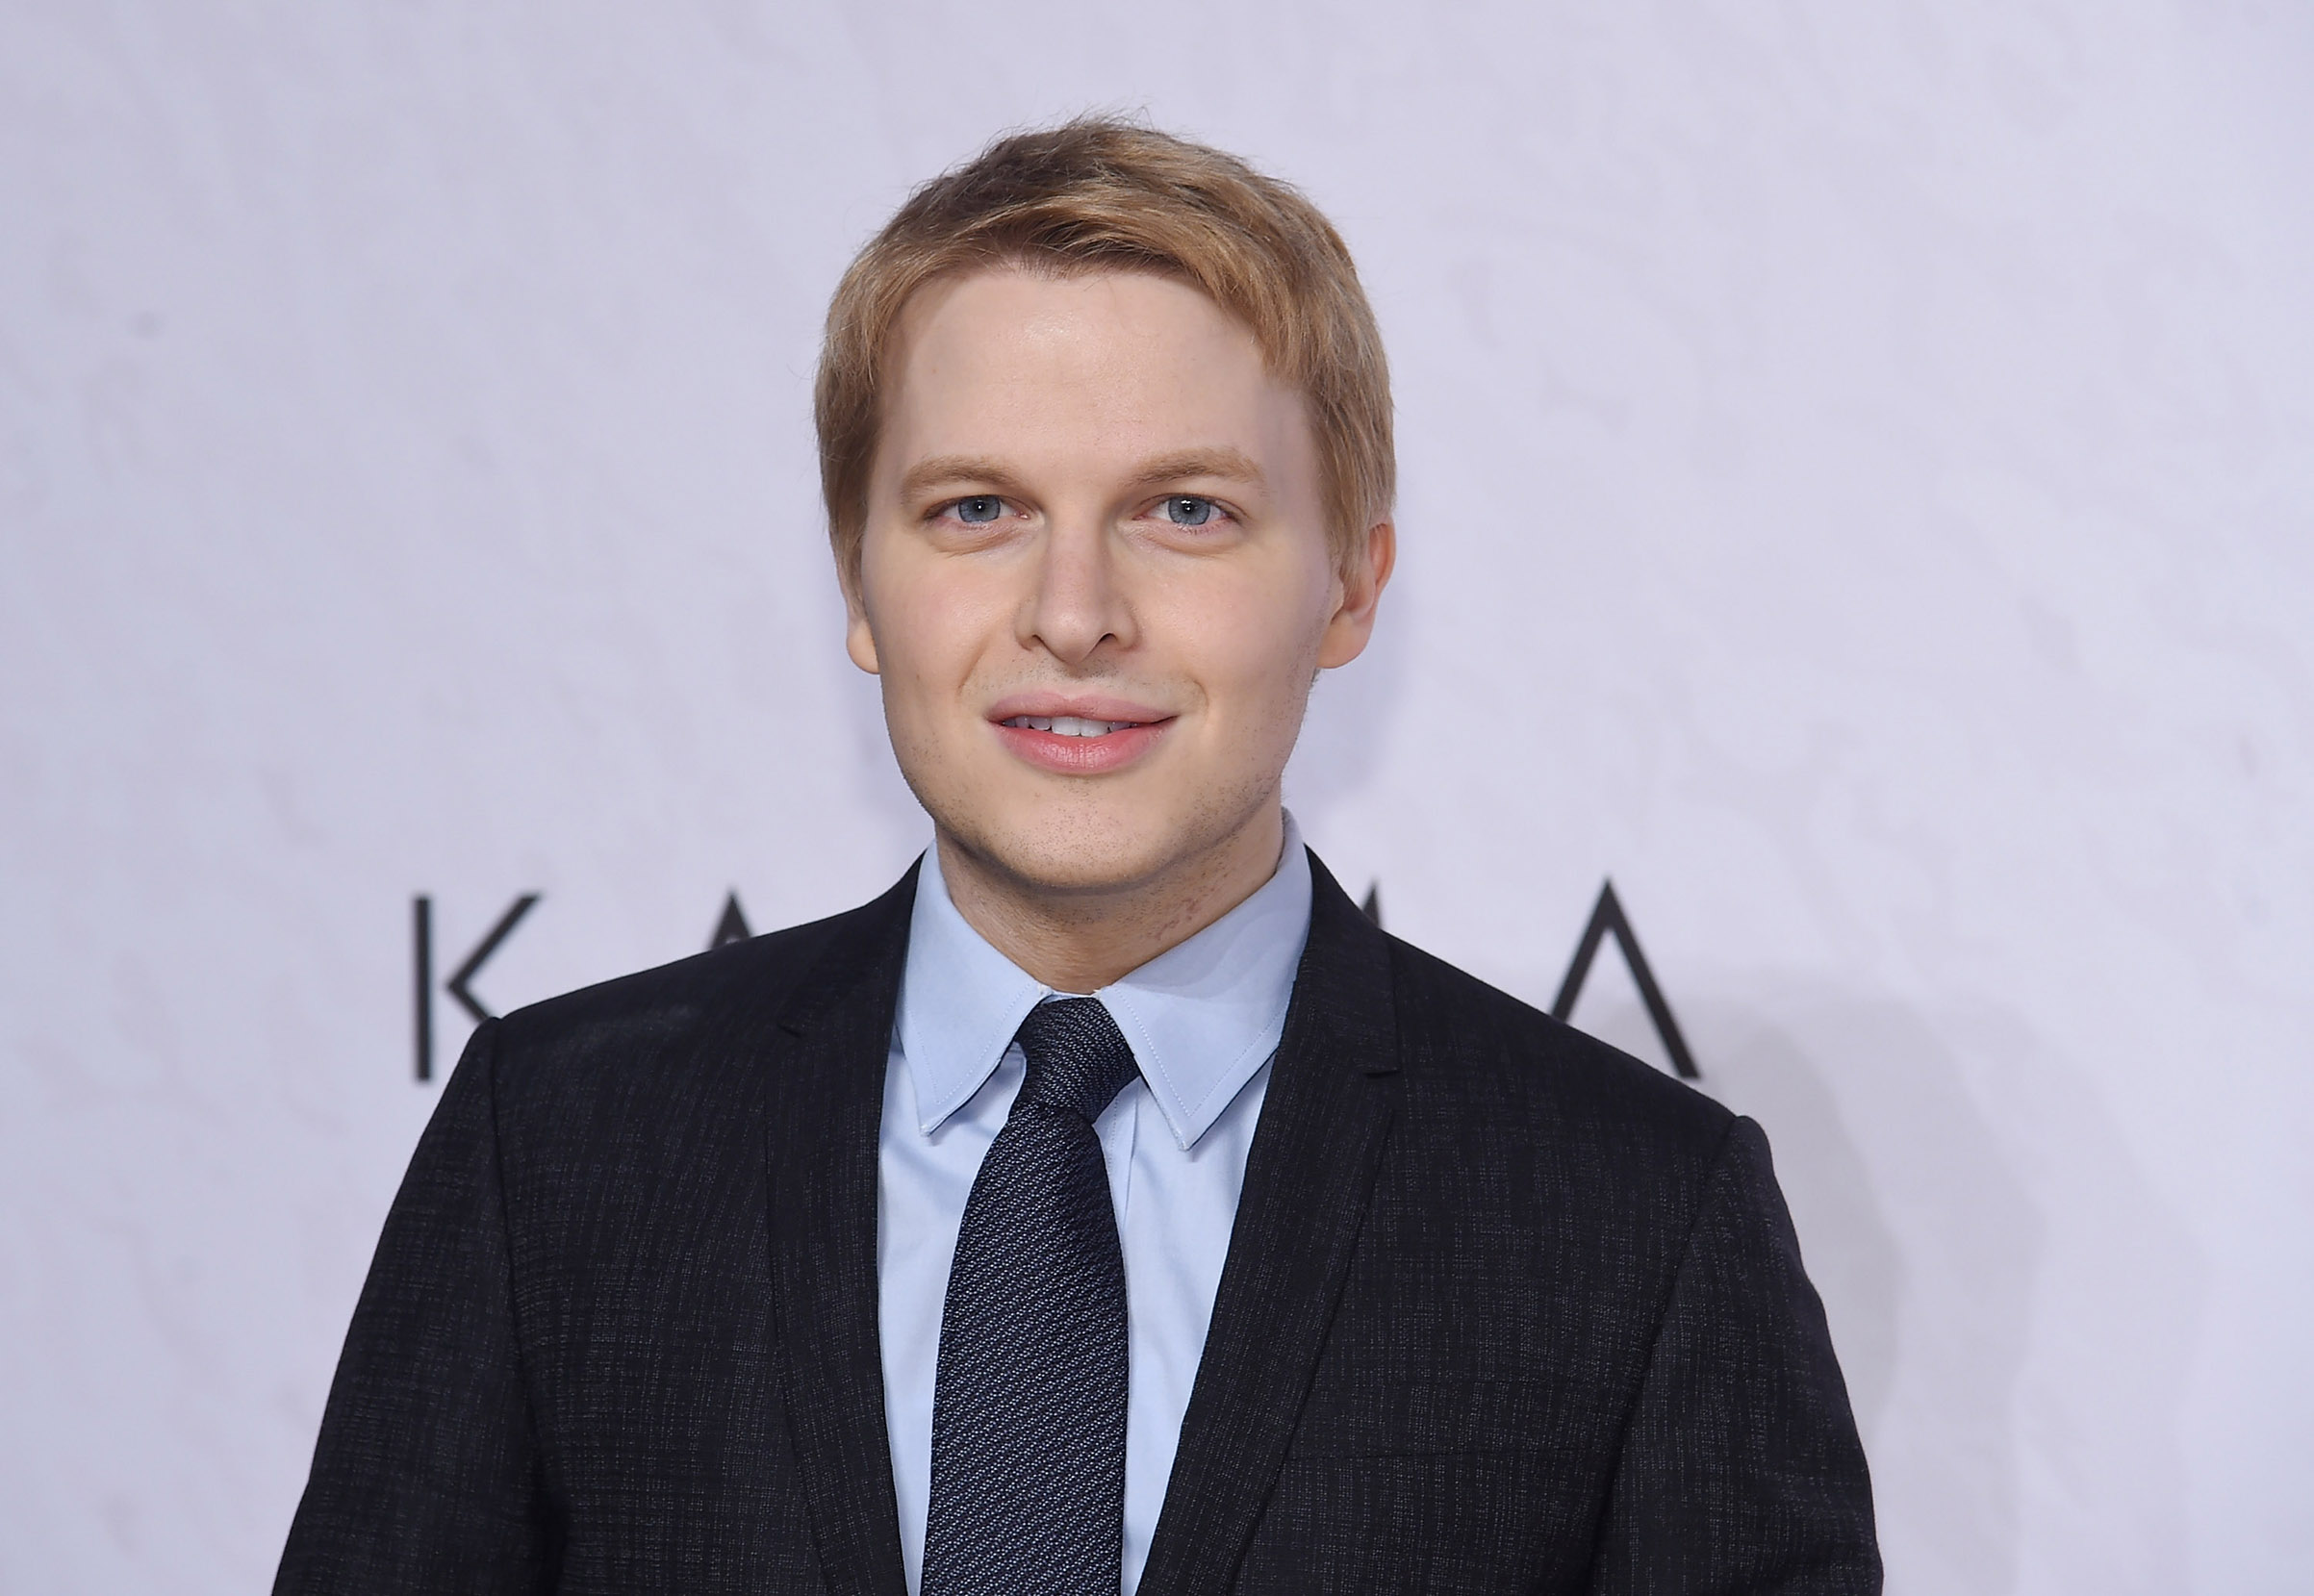 Ronan Farrow attends Variety's Power of Women: New York at Cipriani Wall Street on April 13, 2018 in New York City